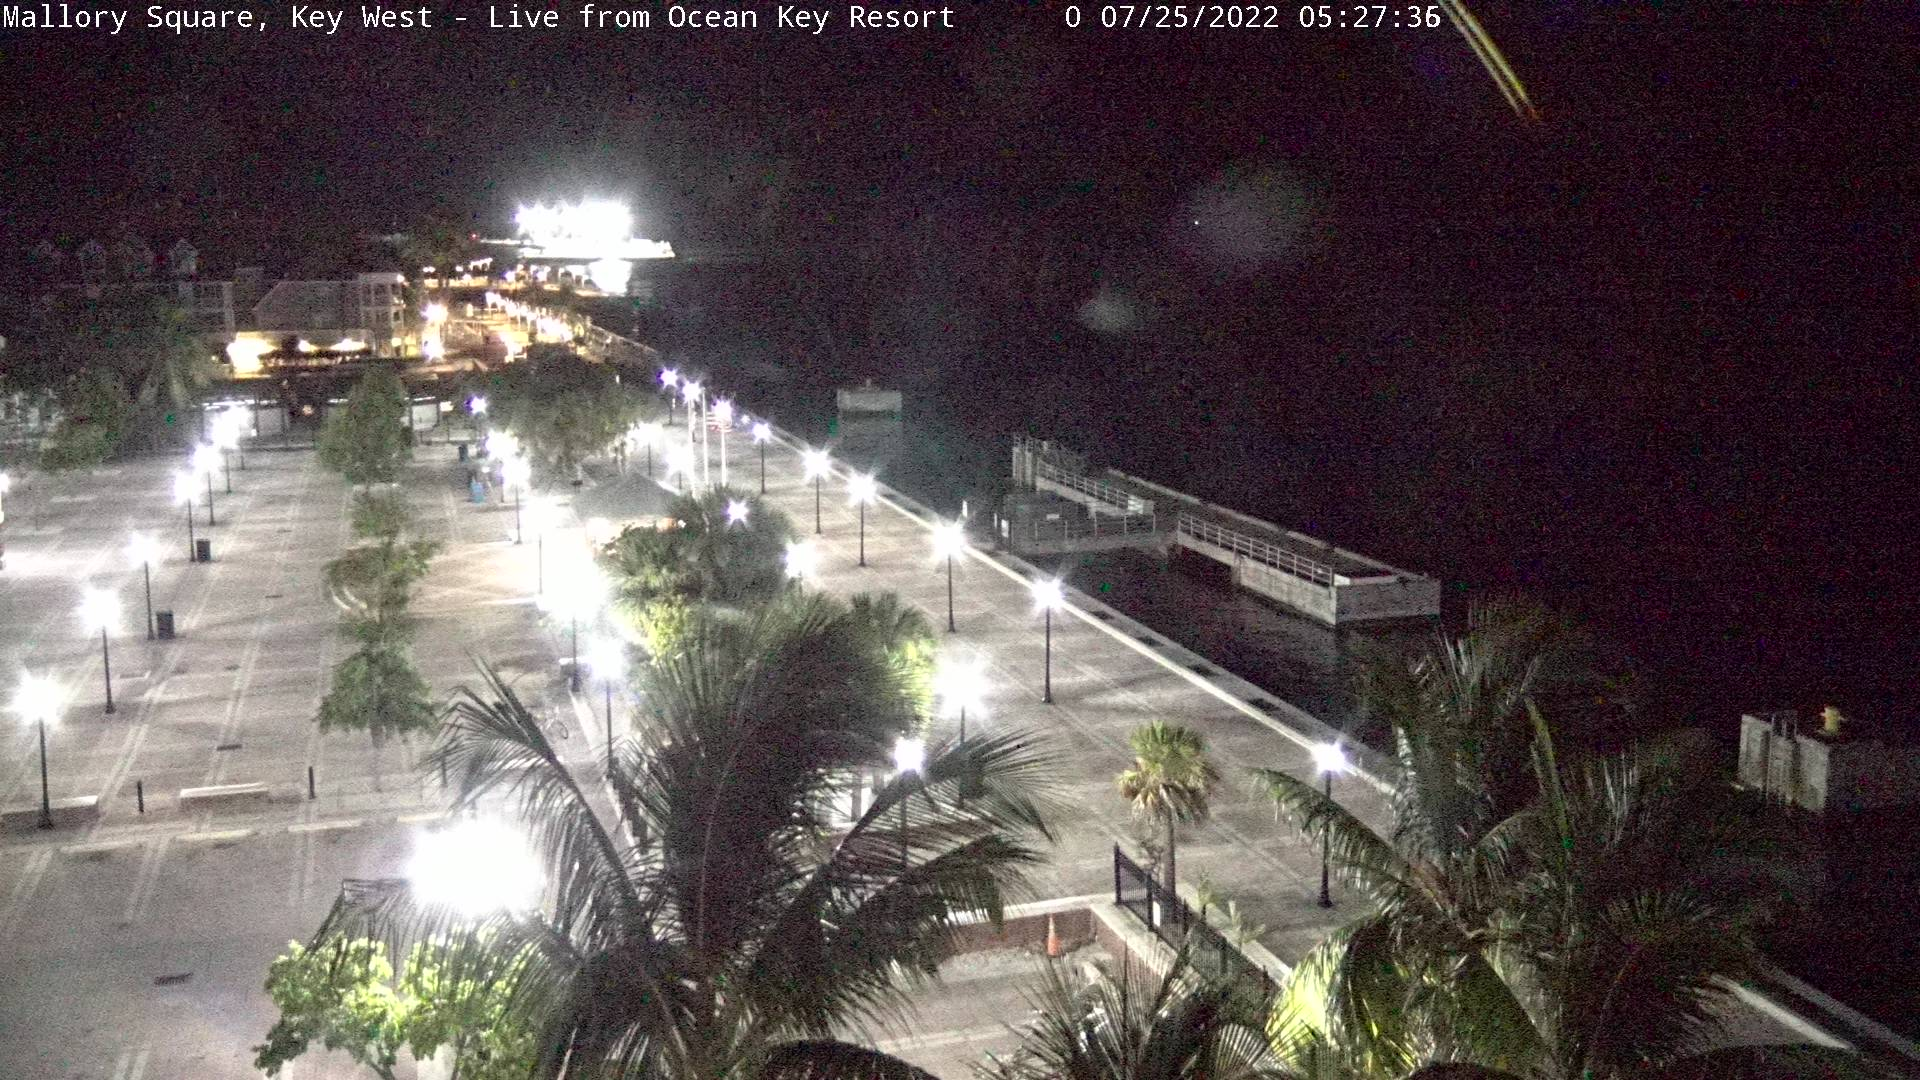 Mallory Square webcam